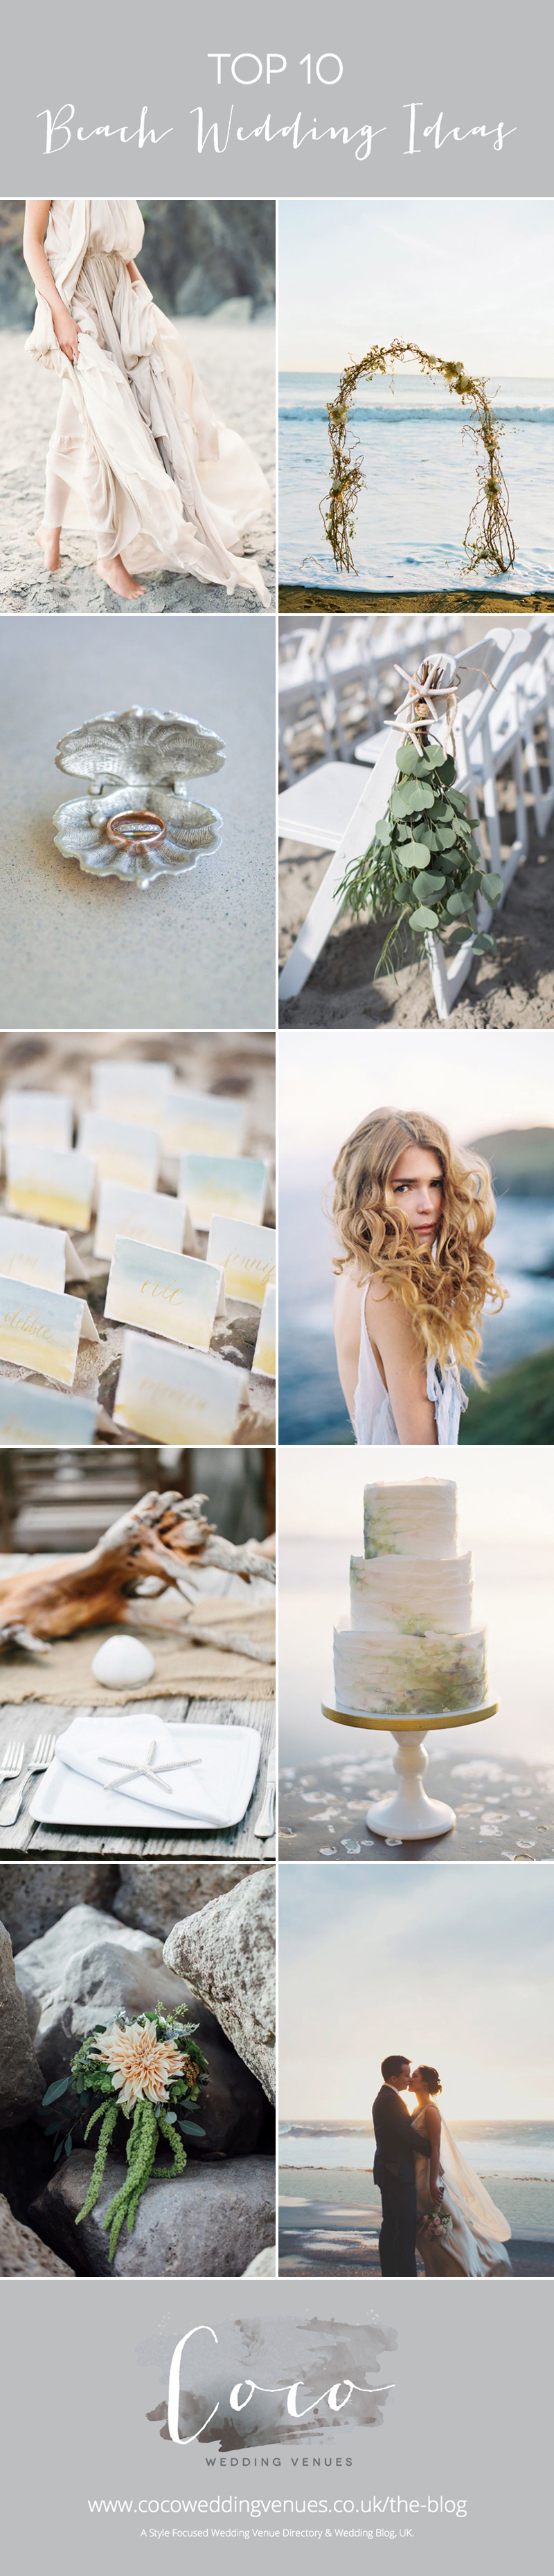 beach-wedding-inspiration-coco-top-10-coco-wedding-venues-pin-it